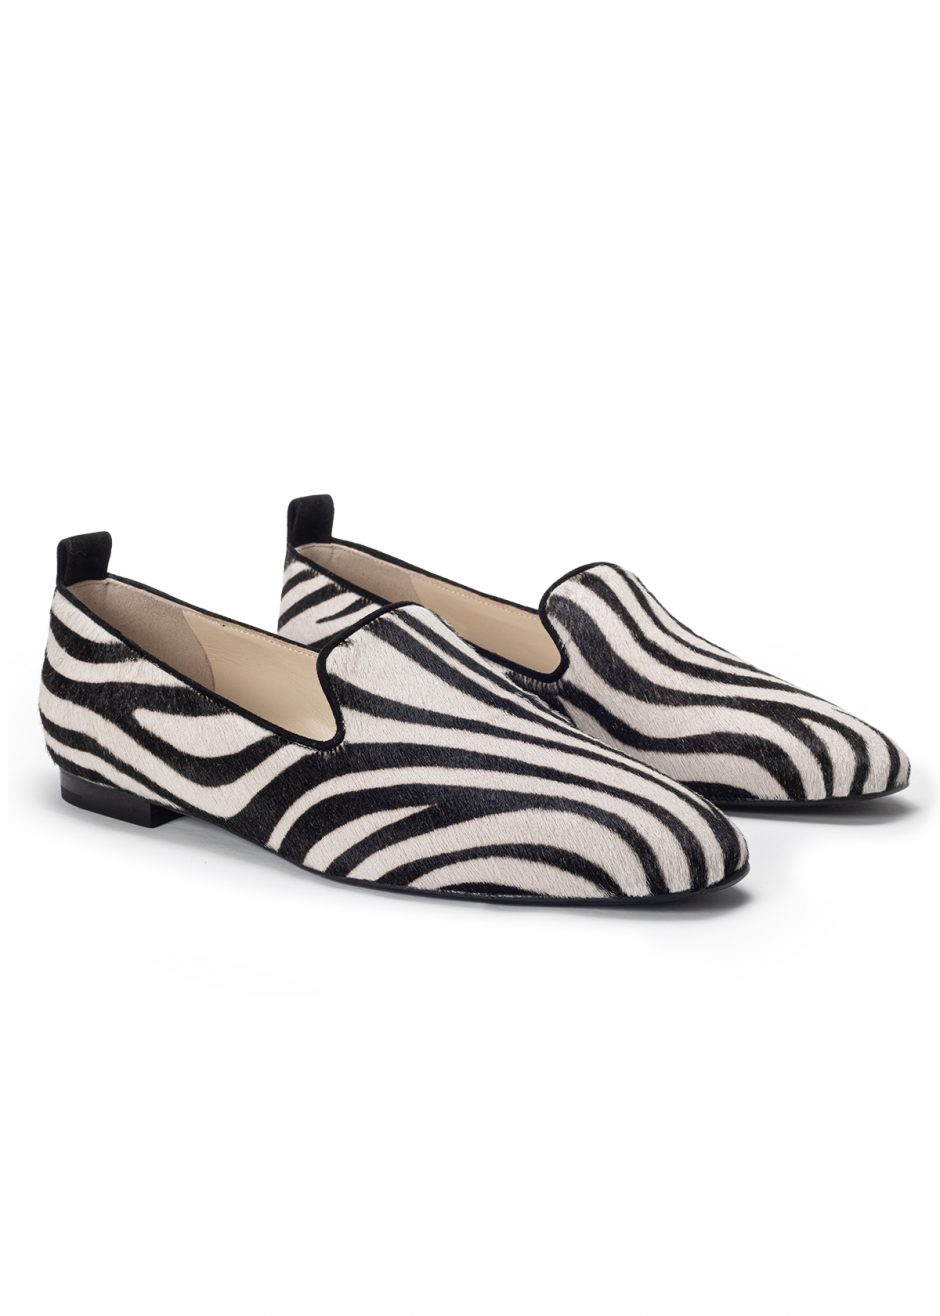 Vicky – Ballet flat striped pony skin suede with black profile